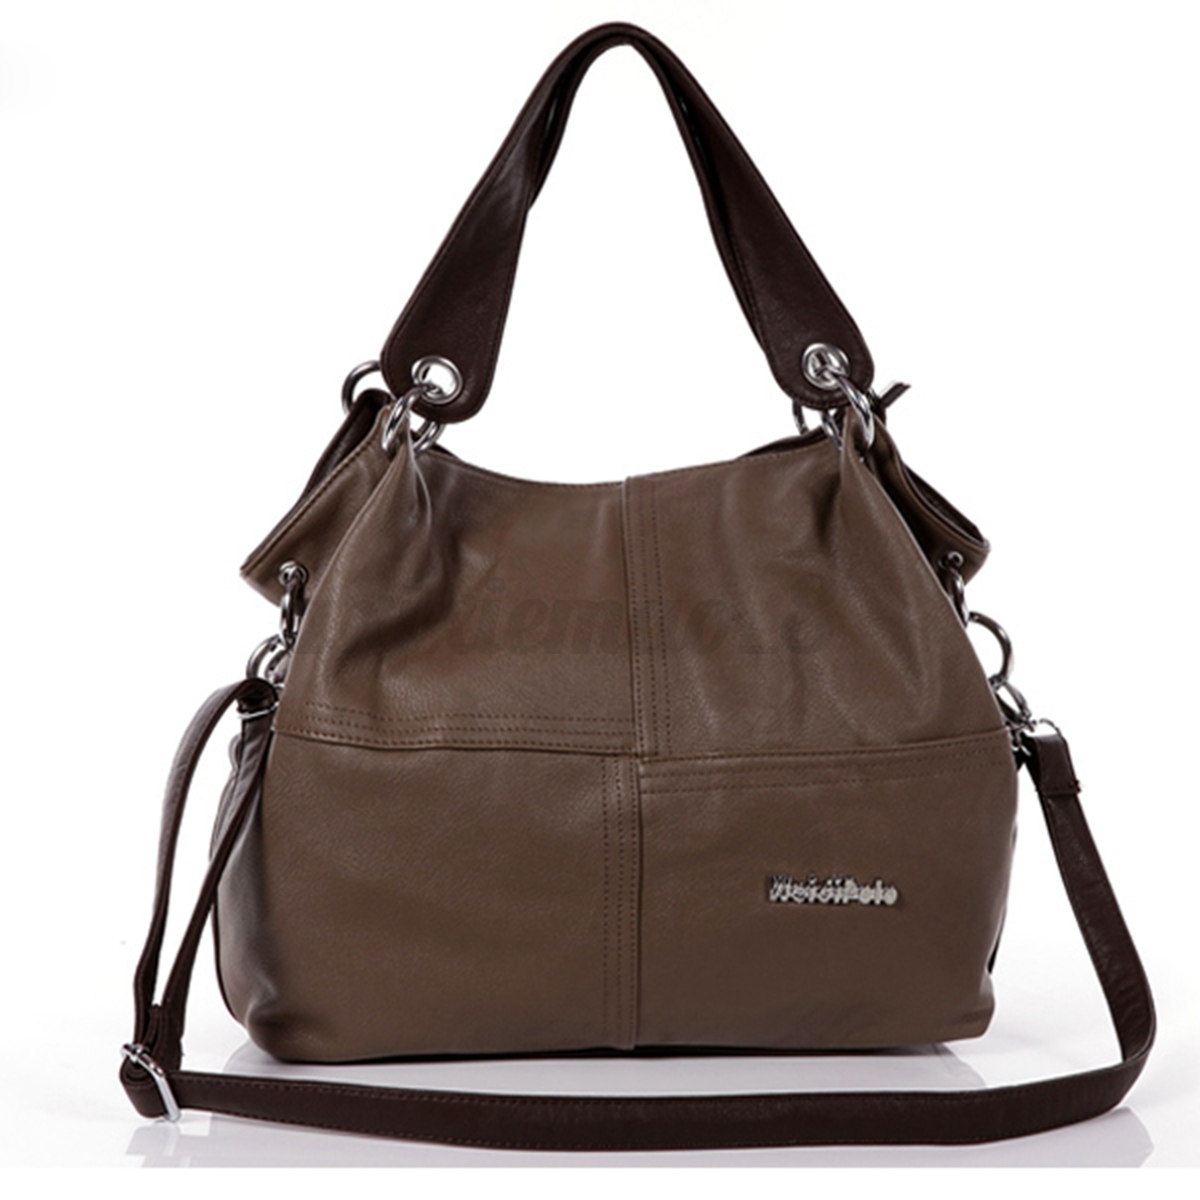 Free shipping on shoulder bags women at dirtyinstalzonevx6.ga Shop the latest shoulder-bag styles from the best brands. Totally free shipping & returns.